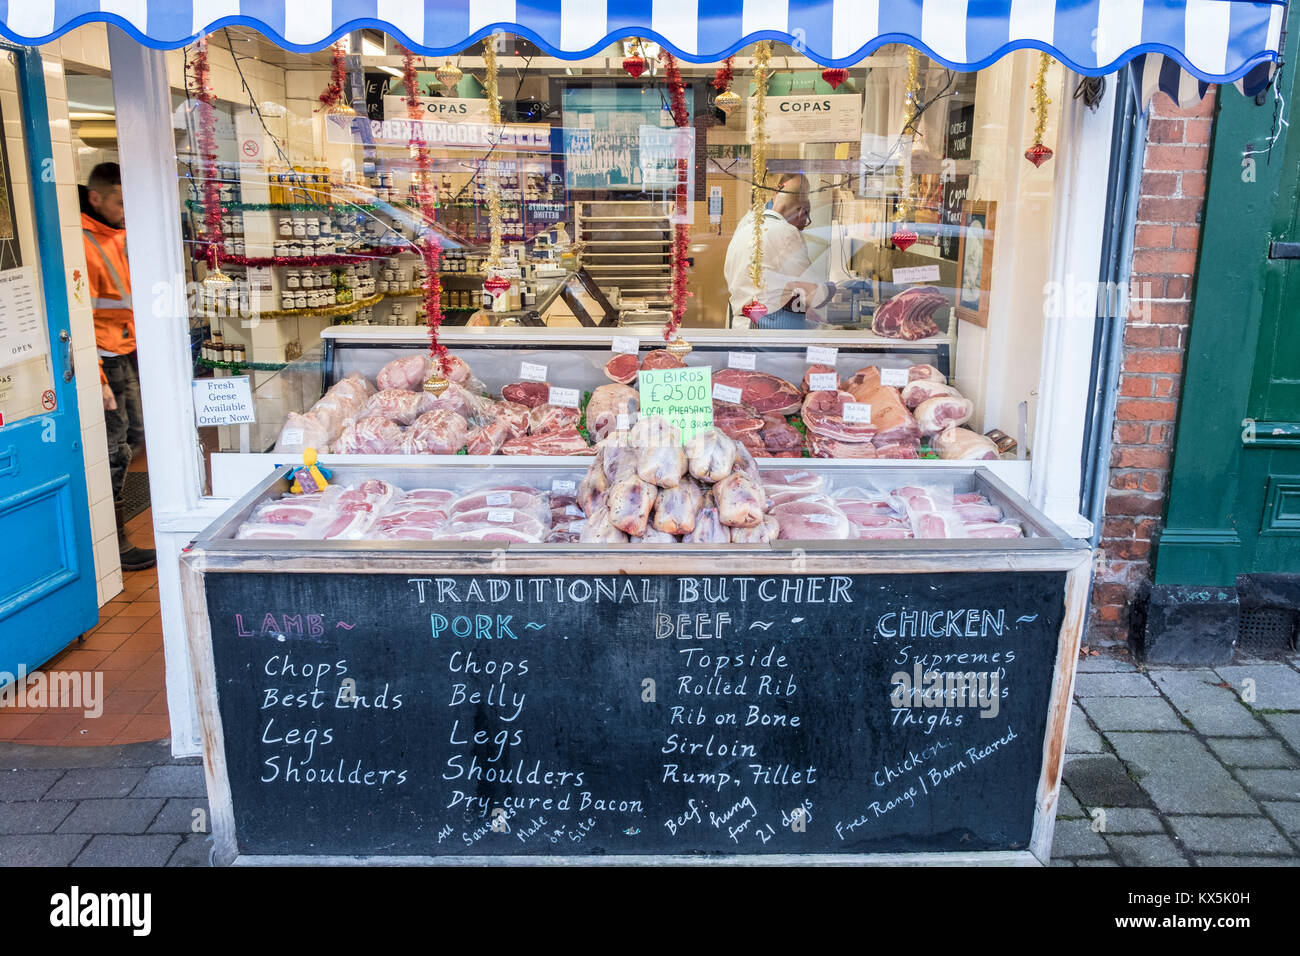 Traditional butcher's shop window display with fresh meat for sale on display. Hartley Wintney, Hart, Hampshire, - Stock Image